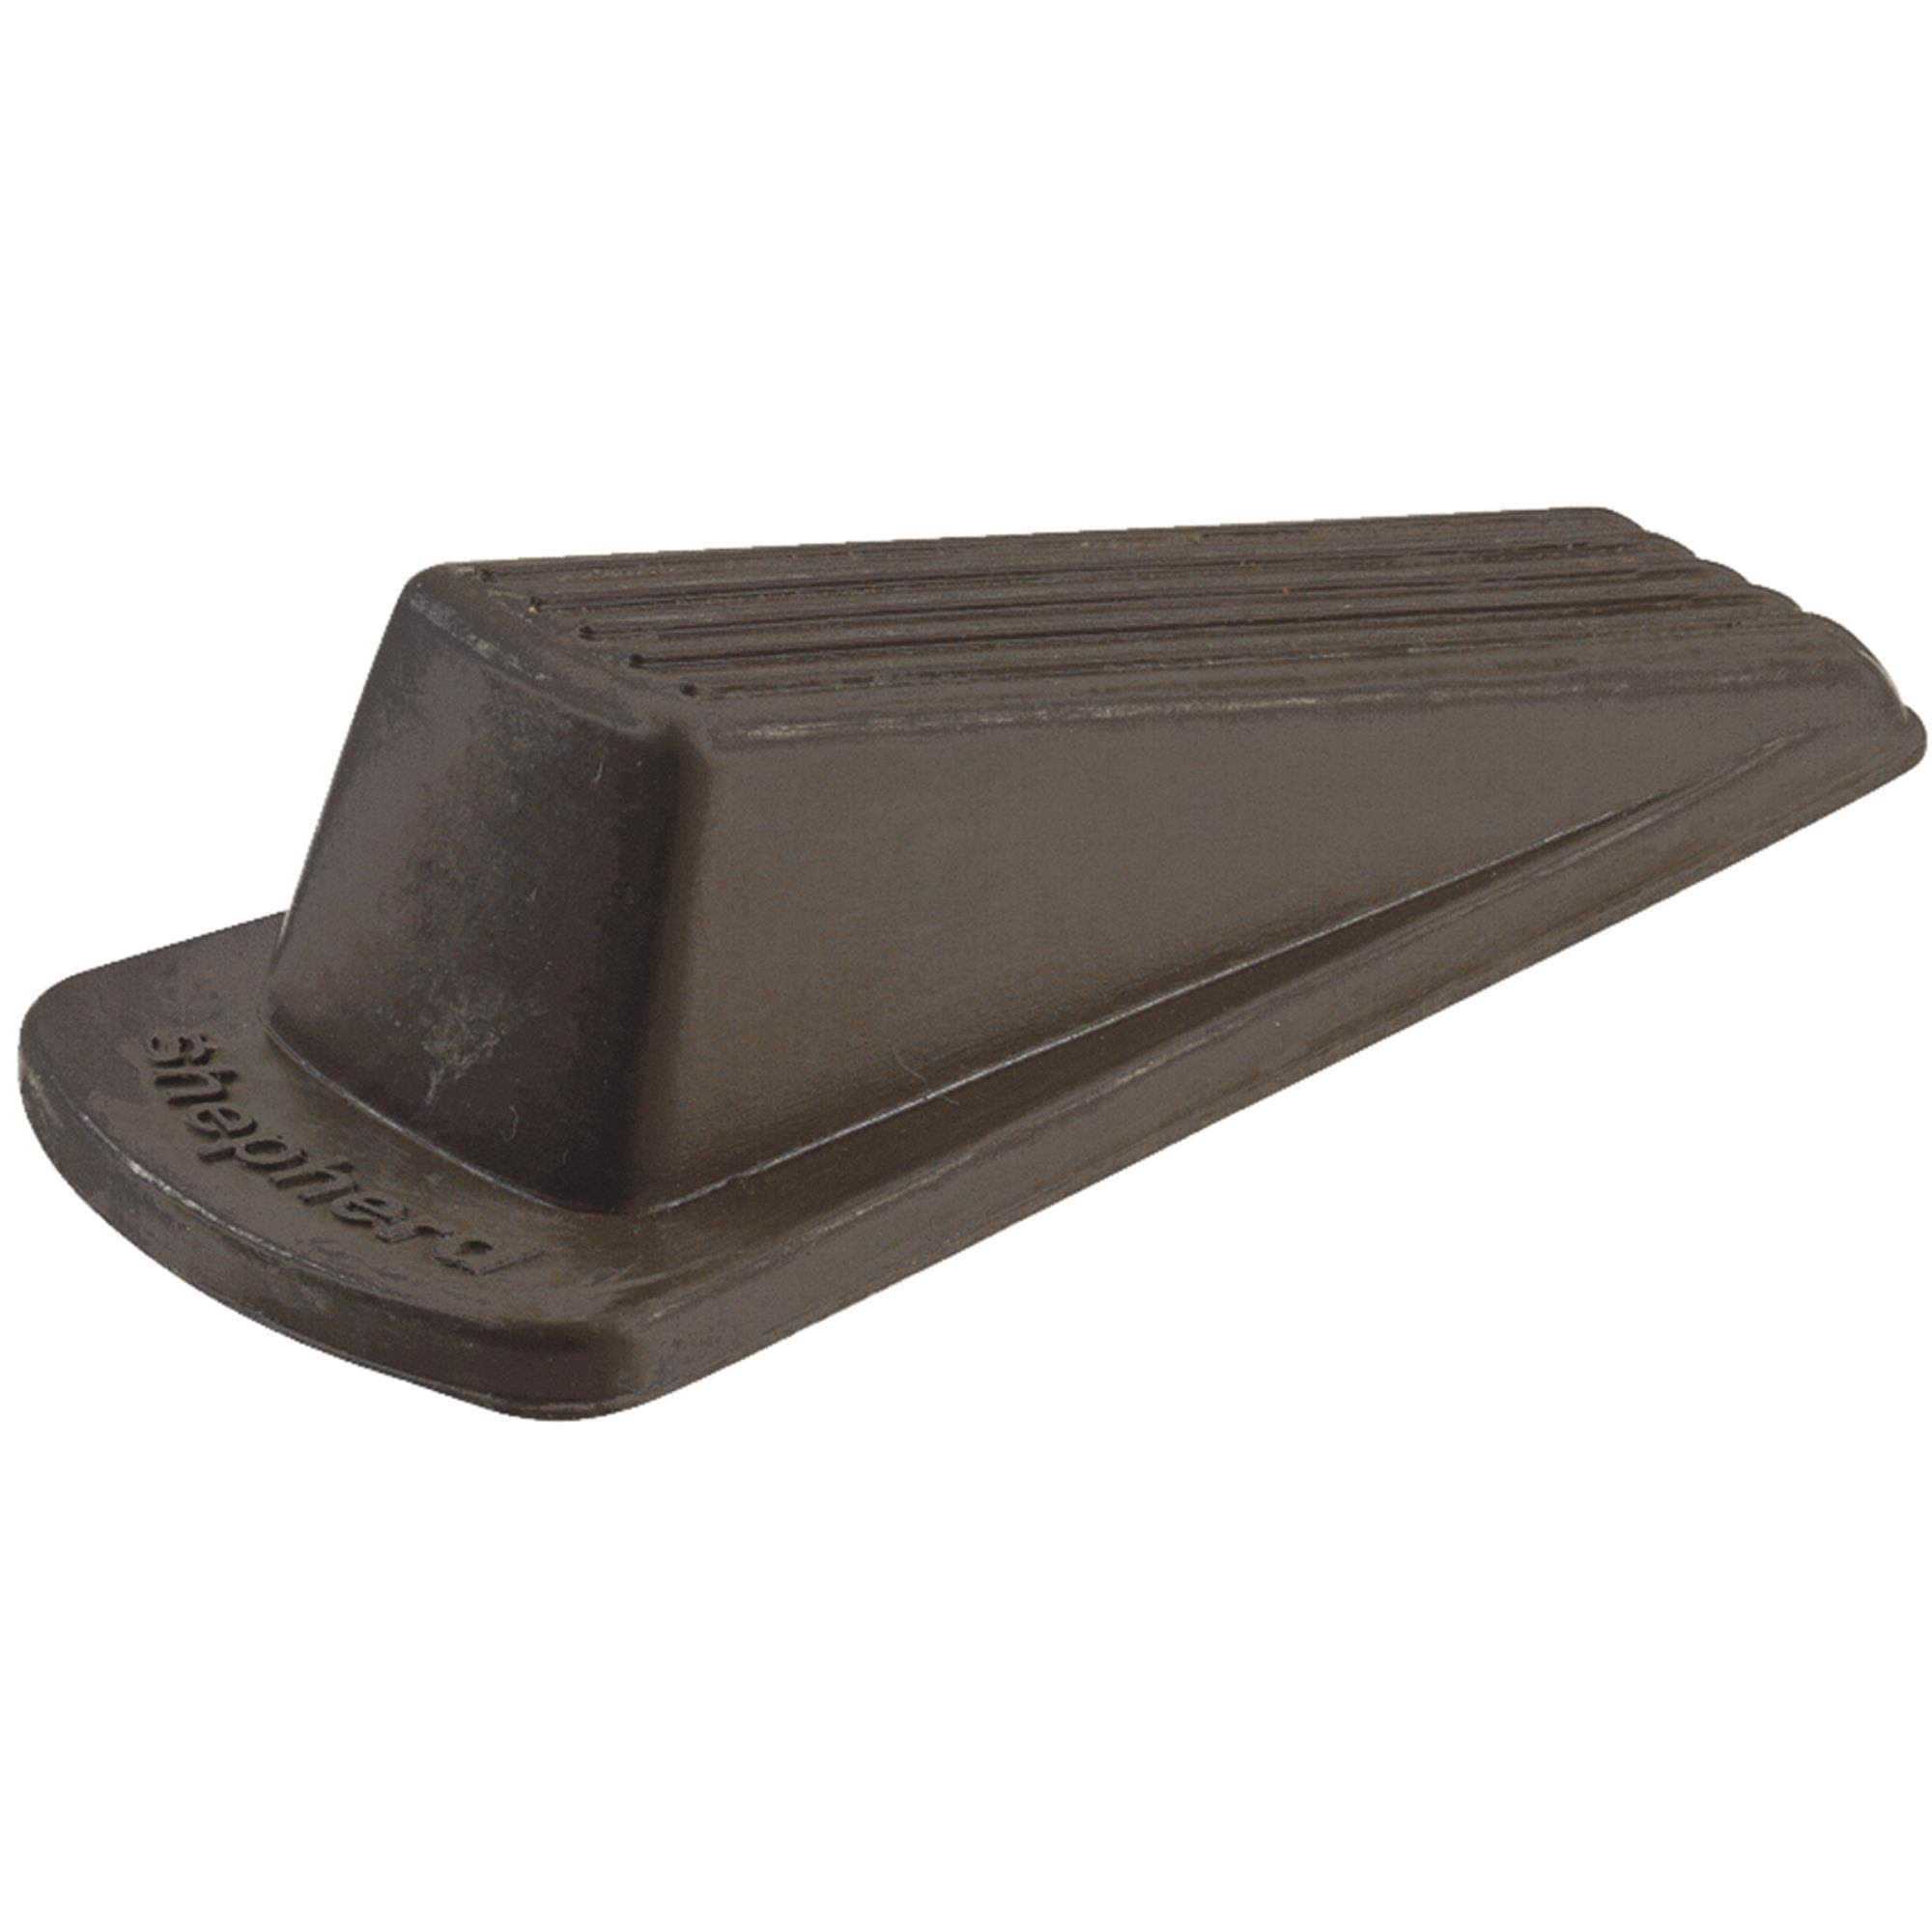 Shepherd Hardwar Heavy Duty Br Door Stop